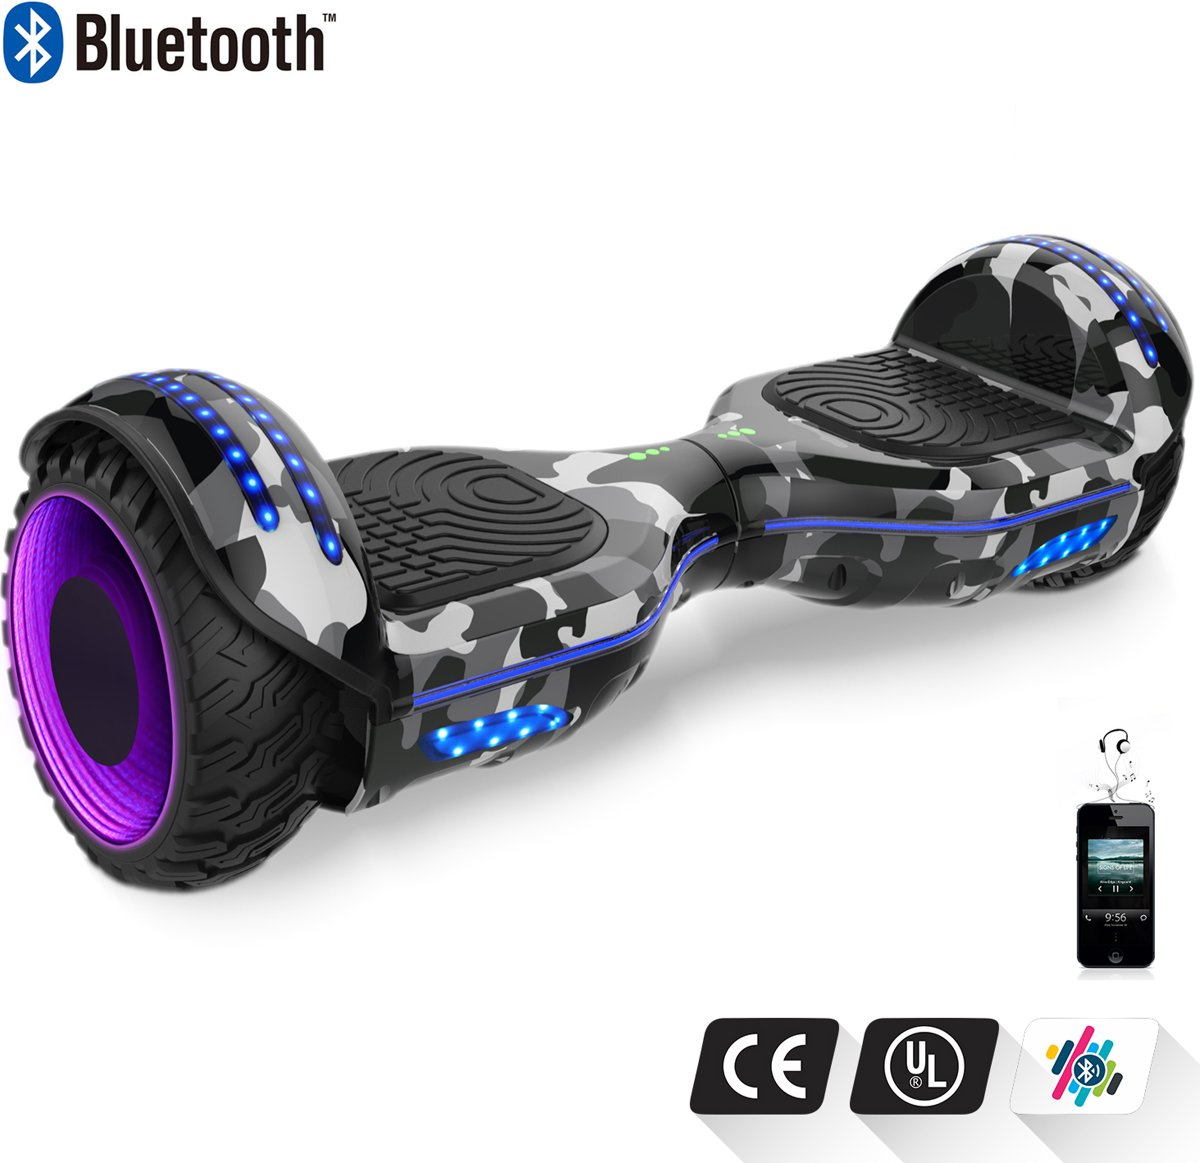 Road Flow Hoverboard SUV 6.5 inch met Flits Wielen, Gyropode Off-Road met TAOTAO moederbord, Bluetooth Speaker, LED-lamp, CE gecertificeerd